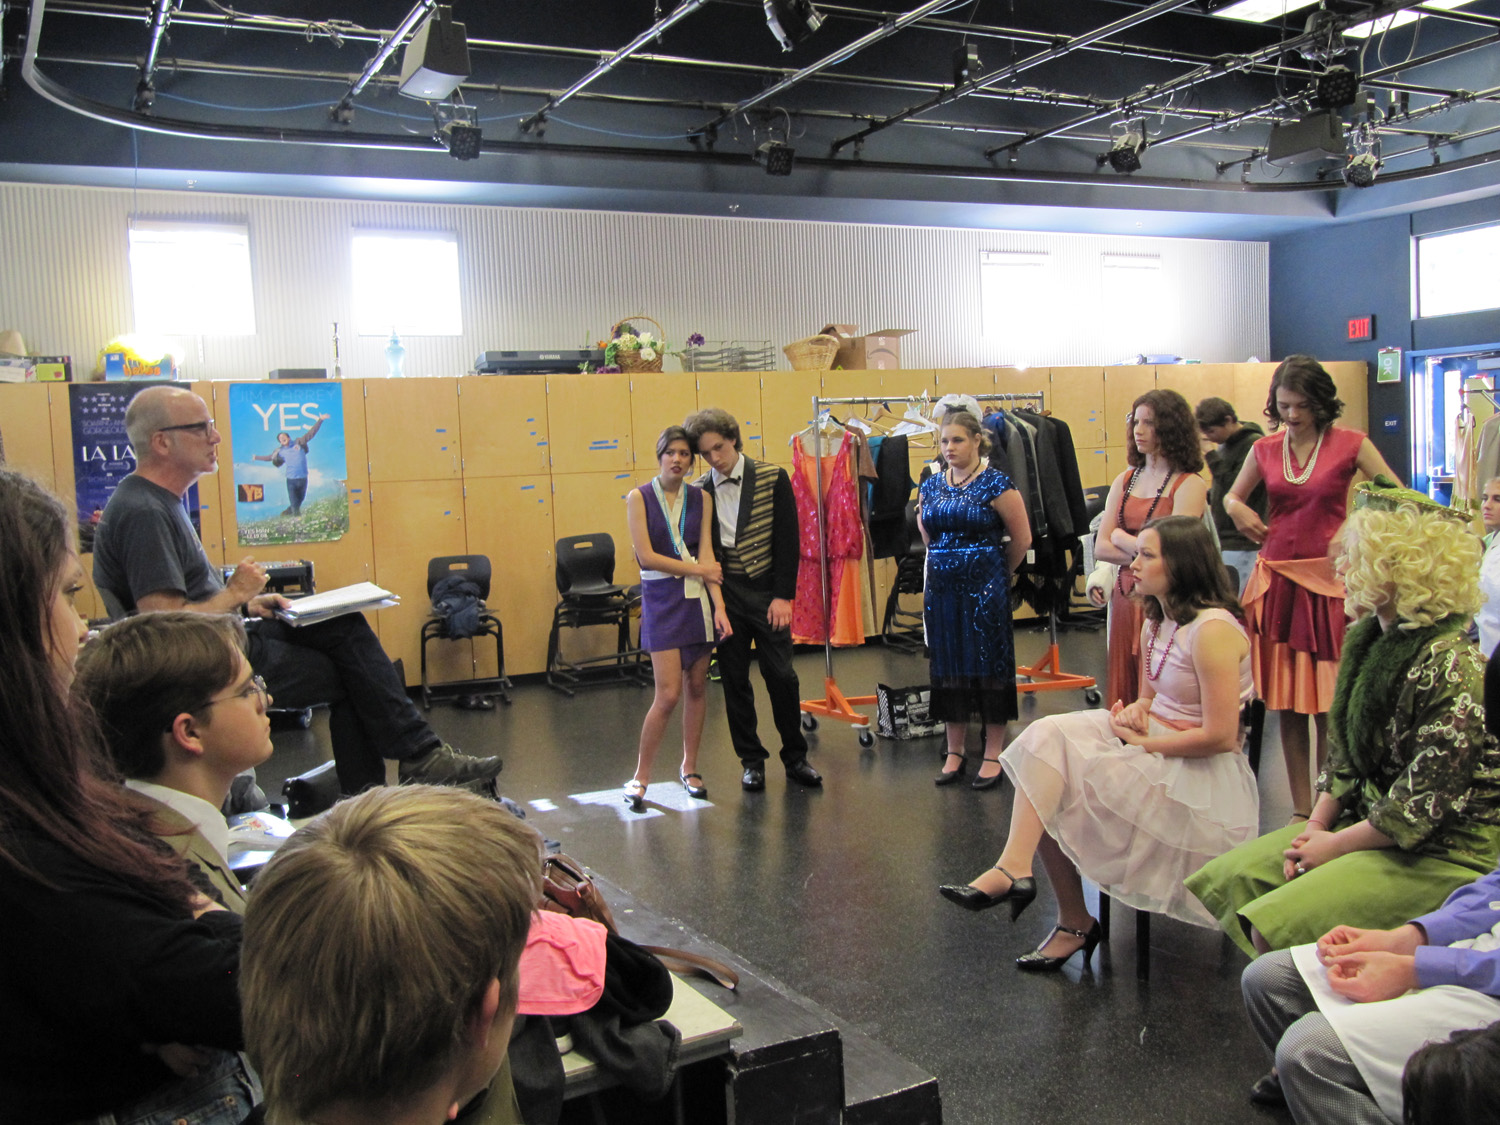 Mr. Gerry Wiener giving notes to the actors before rehearsal